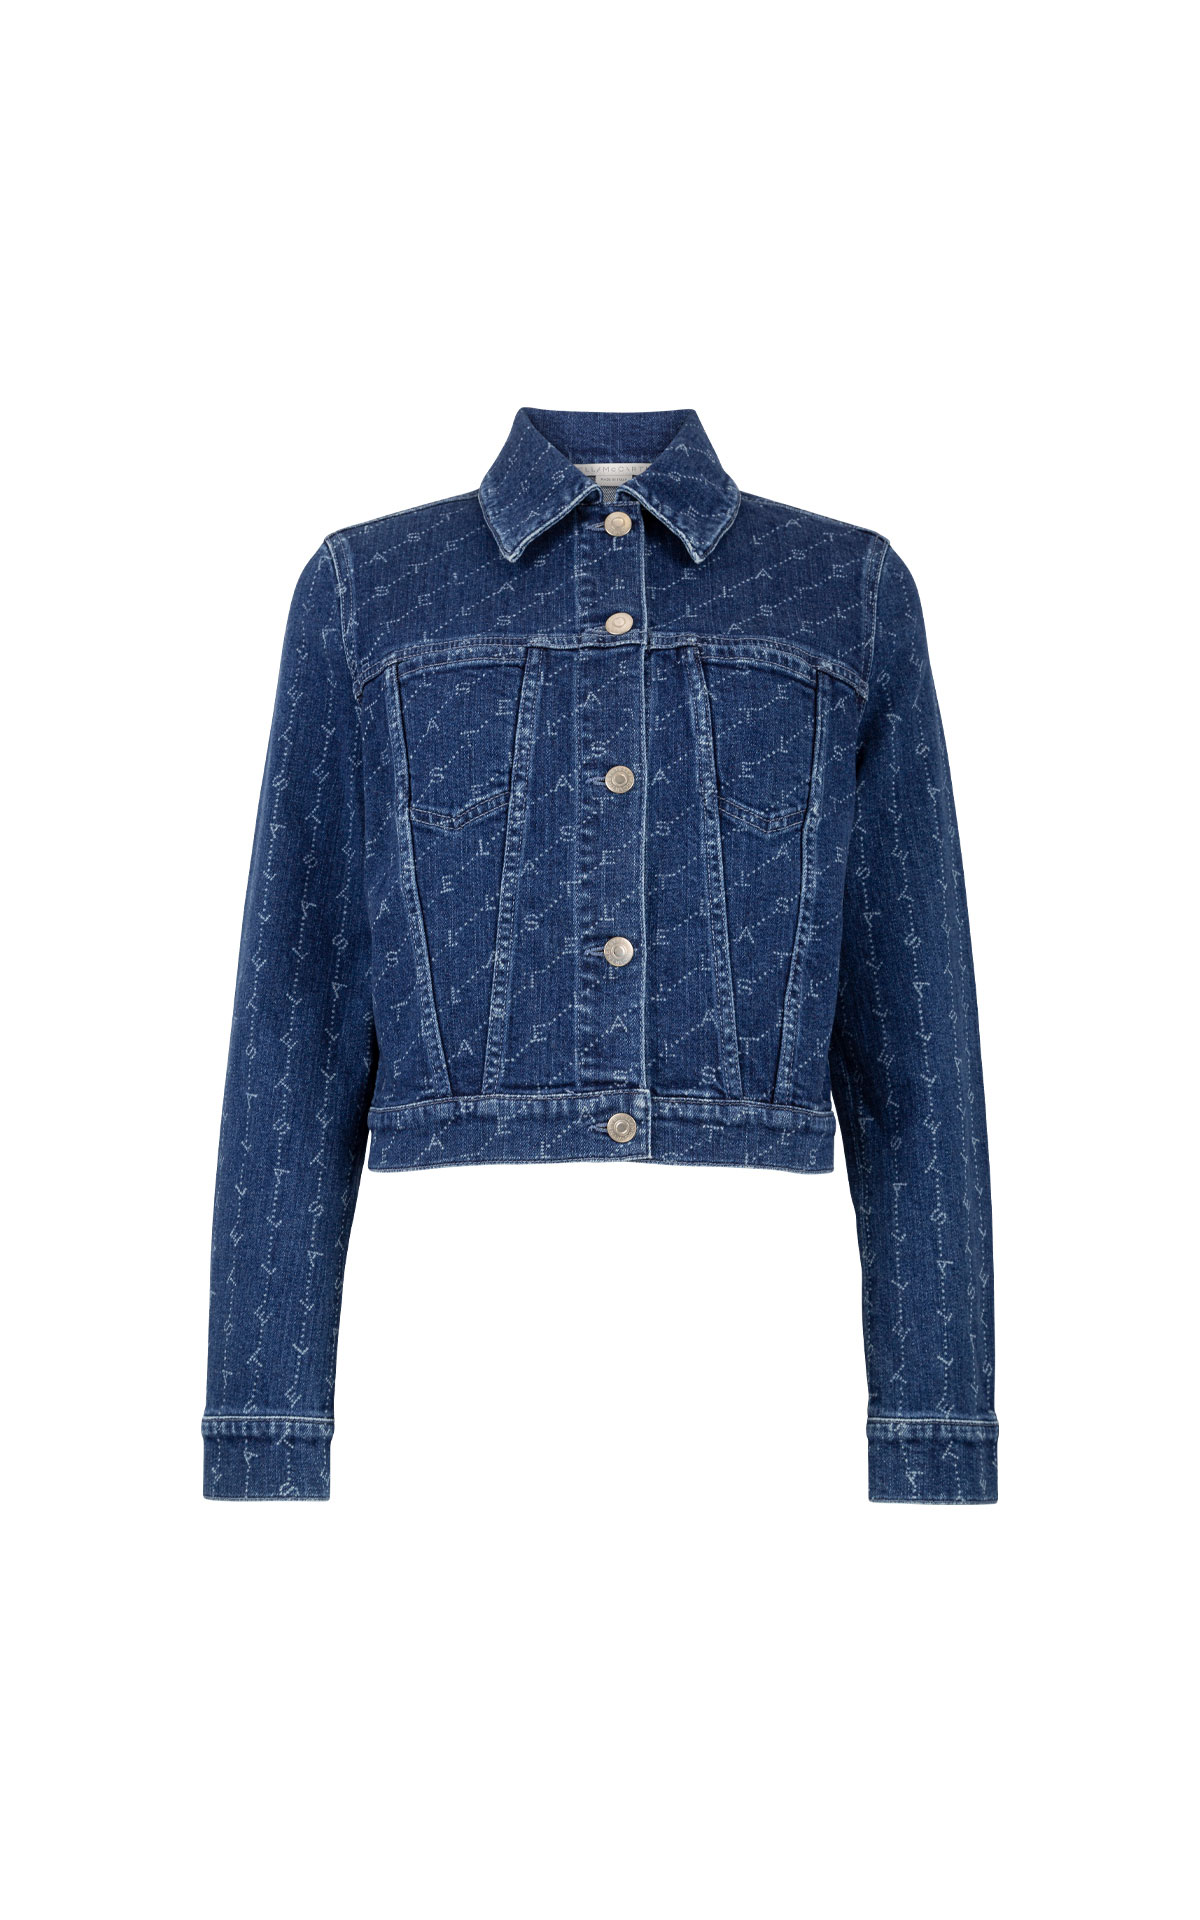 Stella McCartney Denim Jacket